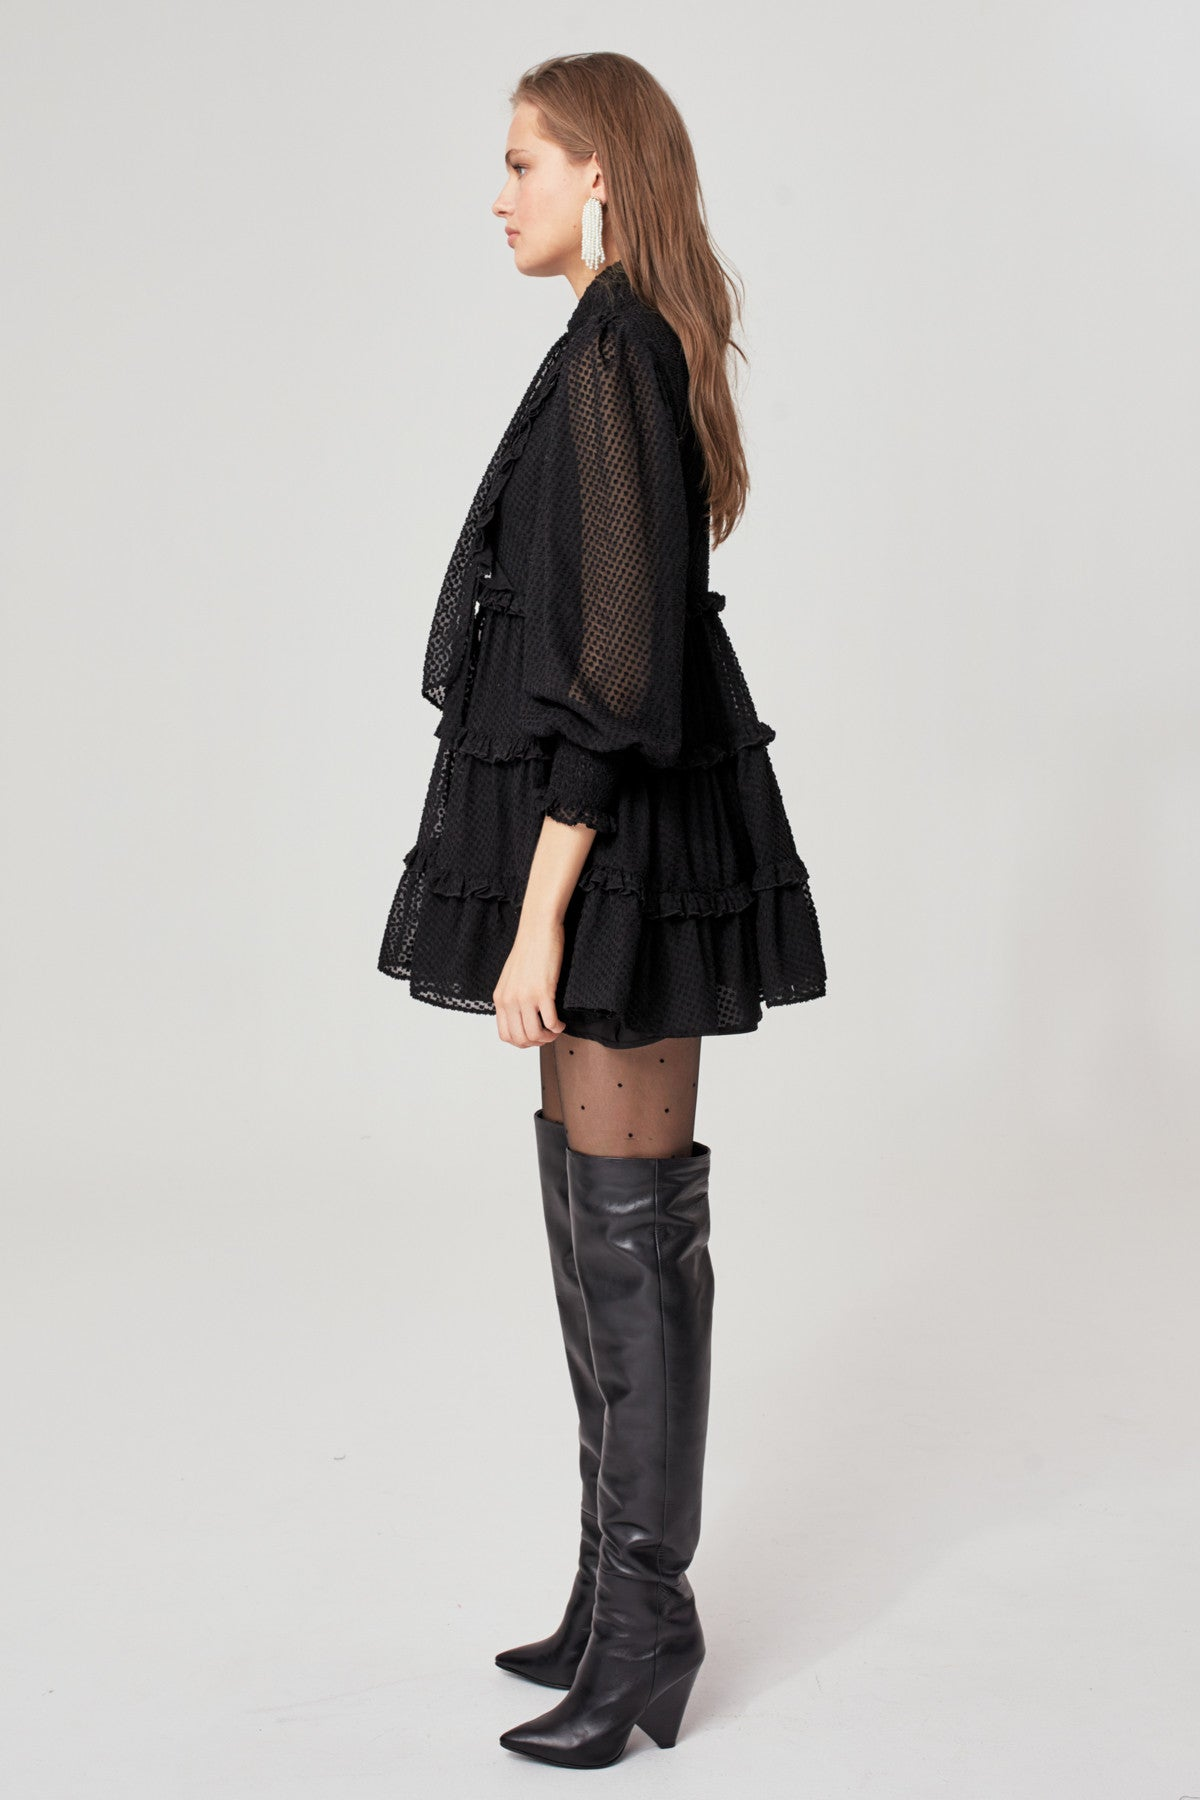 BREAK IN TWO LONG SLEEVE DRESS black